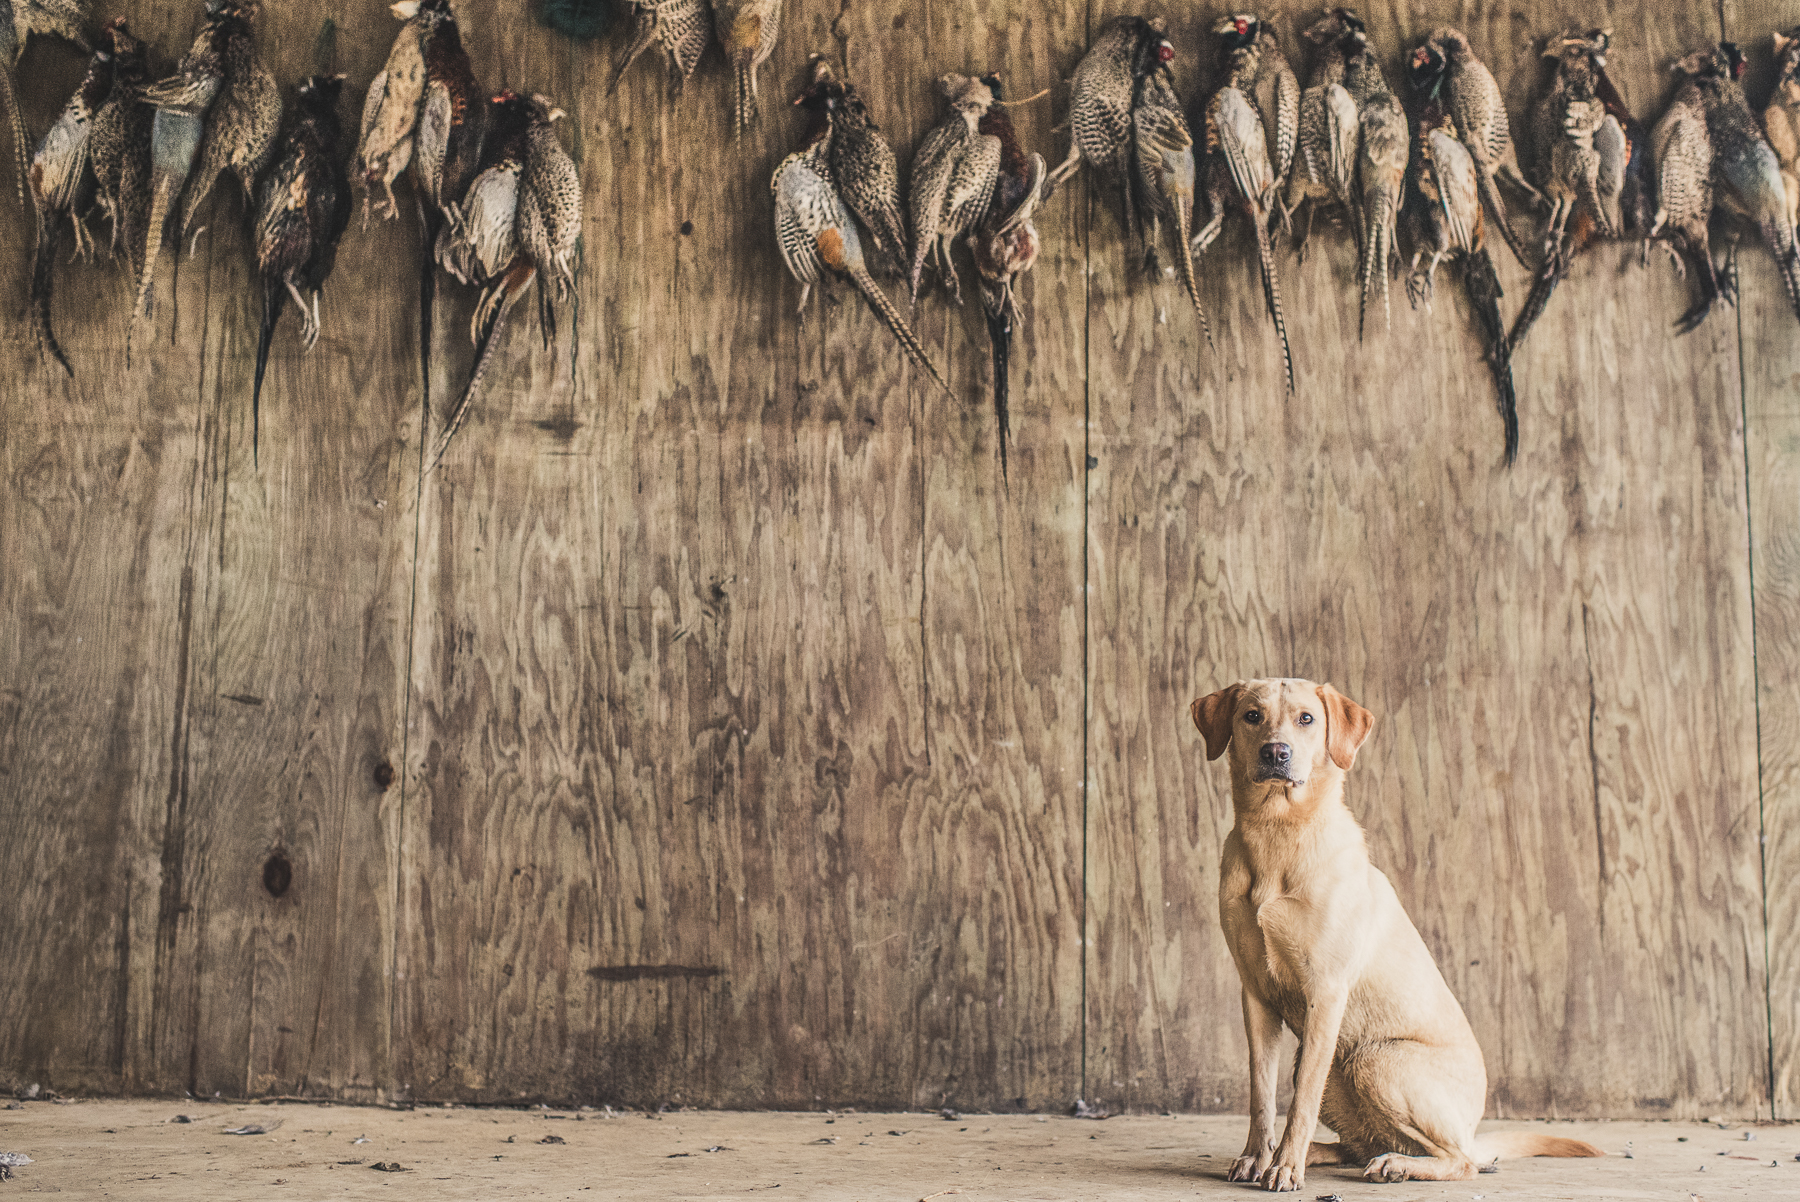 Yellow Labrador sitting under braces of shot pheasants